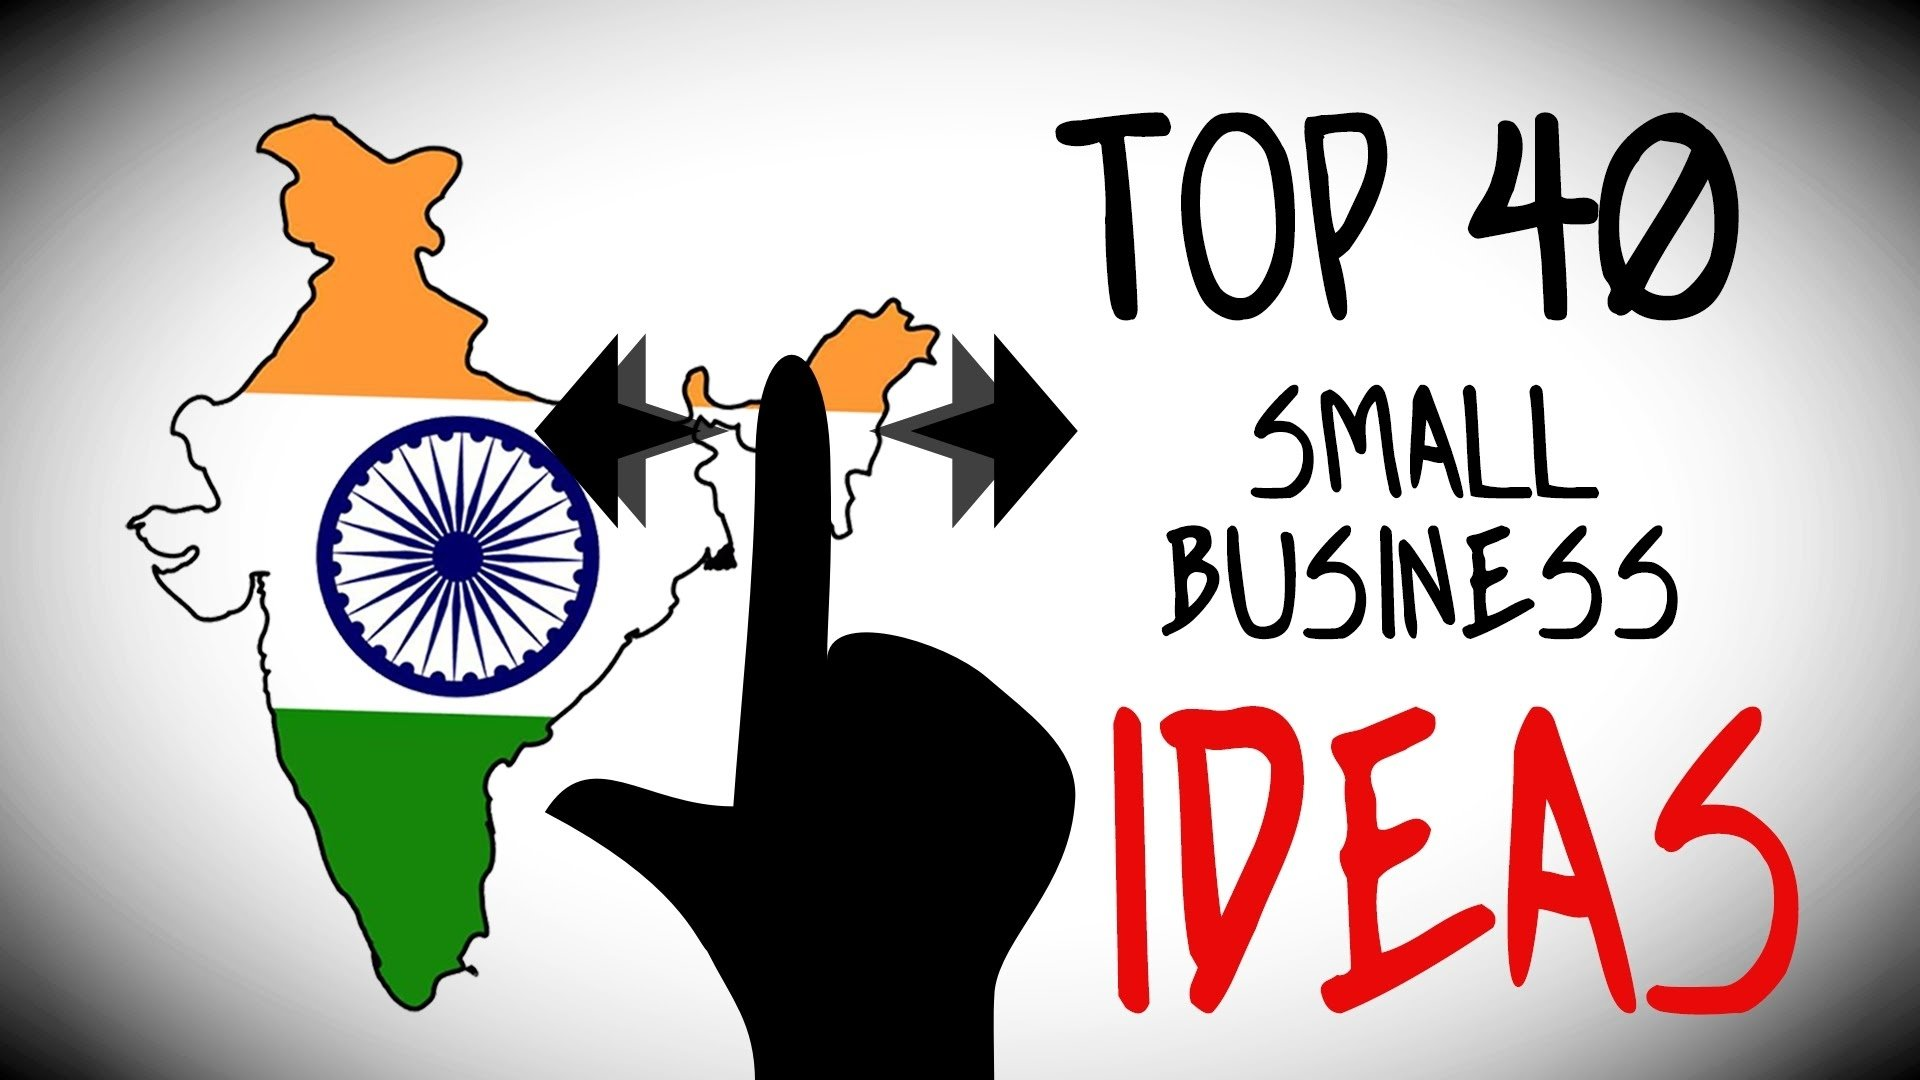 10 Best Ideas To Start A Small Business top 40 small business ideas in india for starting your own business 6 2021